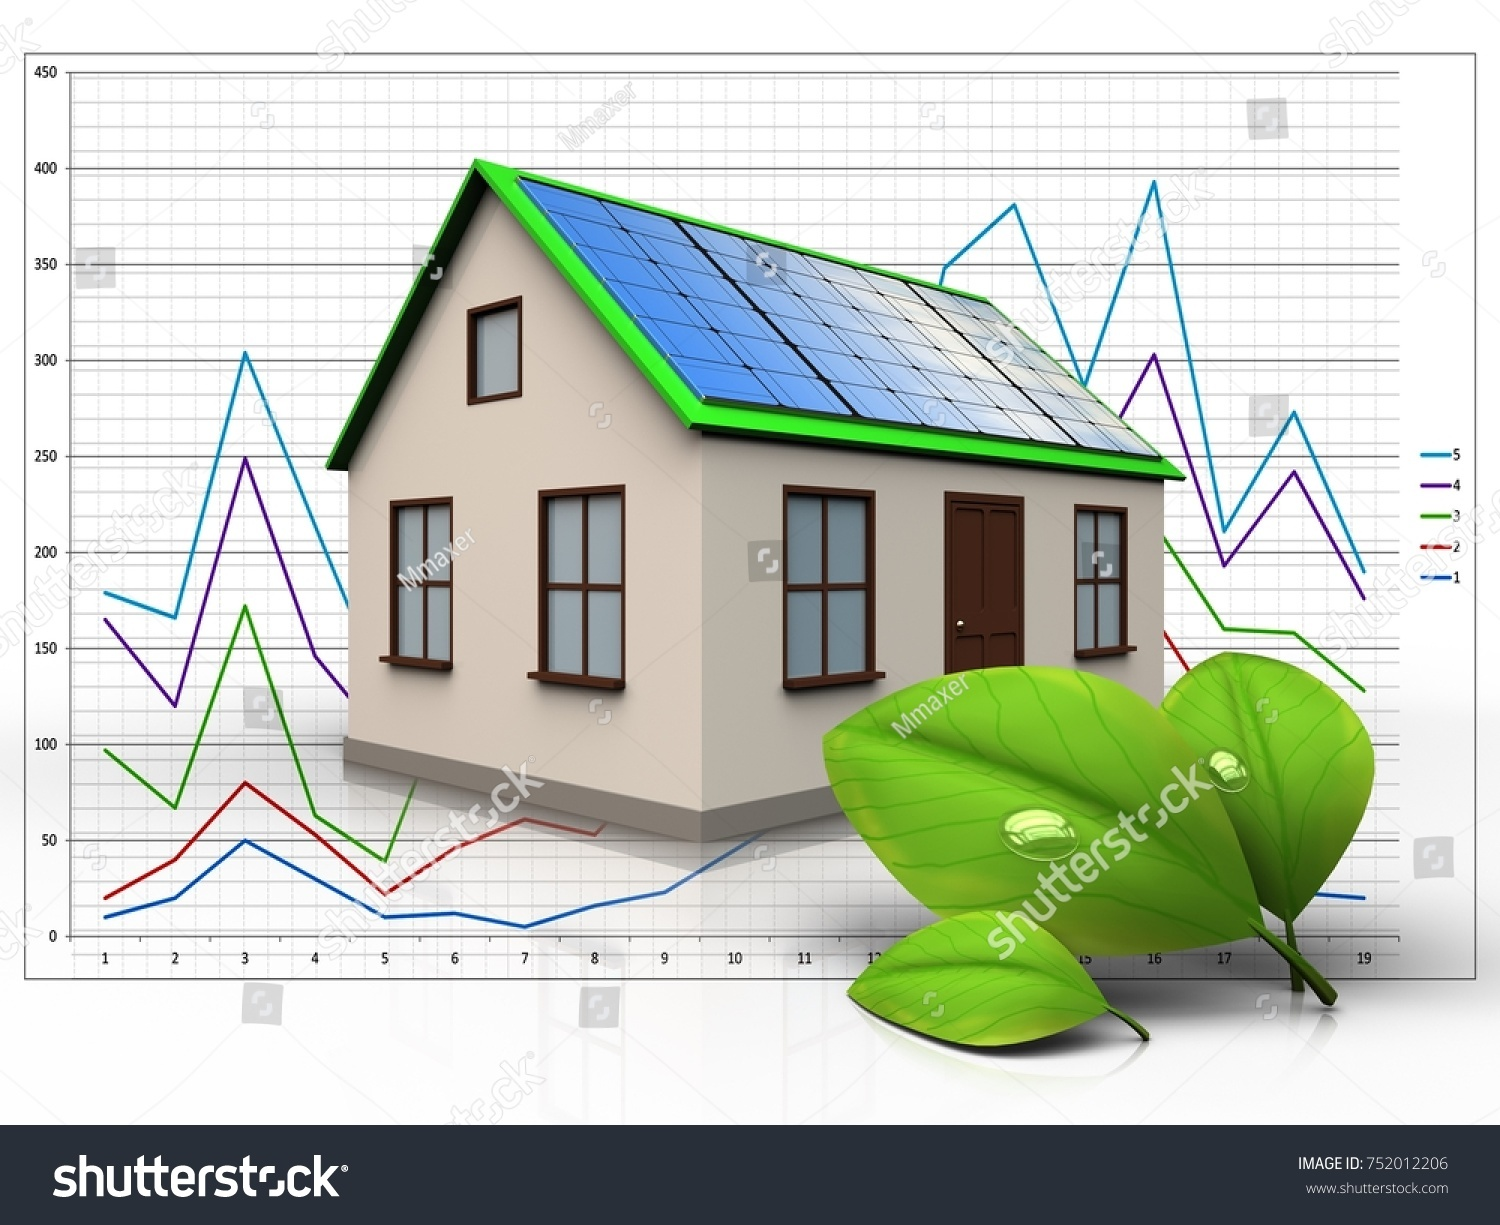 3 D Illustration Home Solar Panel Leafs Stock 752012206 Diagrams 3d Of With Over Diagram Background